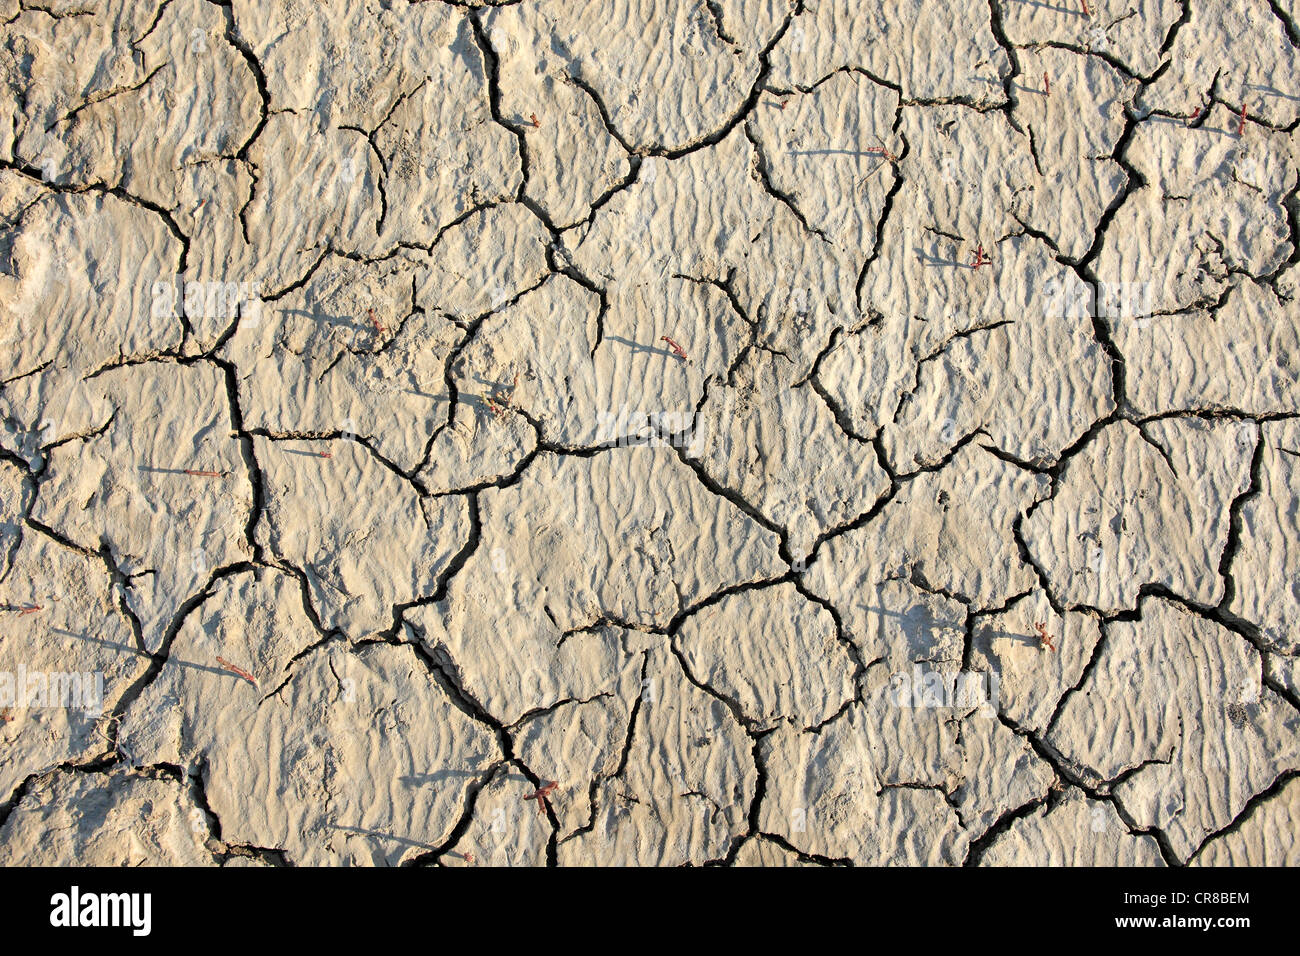 Parched soil surface, Saintes-Marie-de-la-Mer, Bouches du Rhone, Camargue, France, Europe - Stock Image